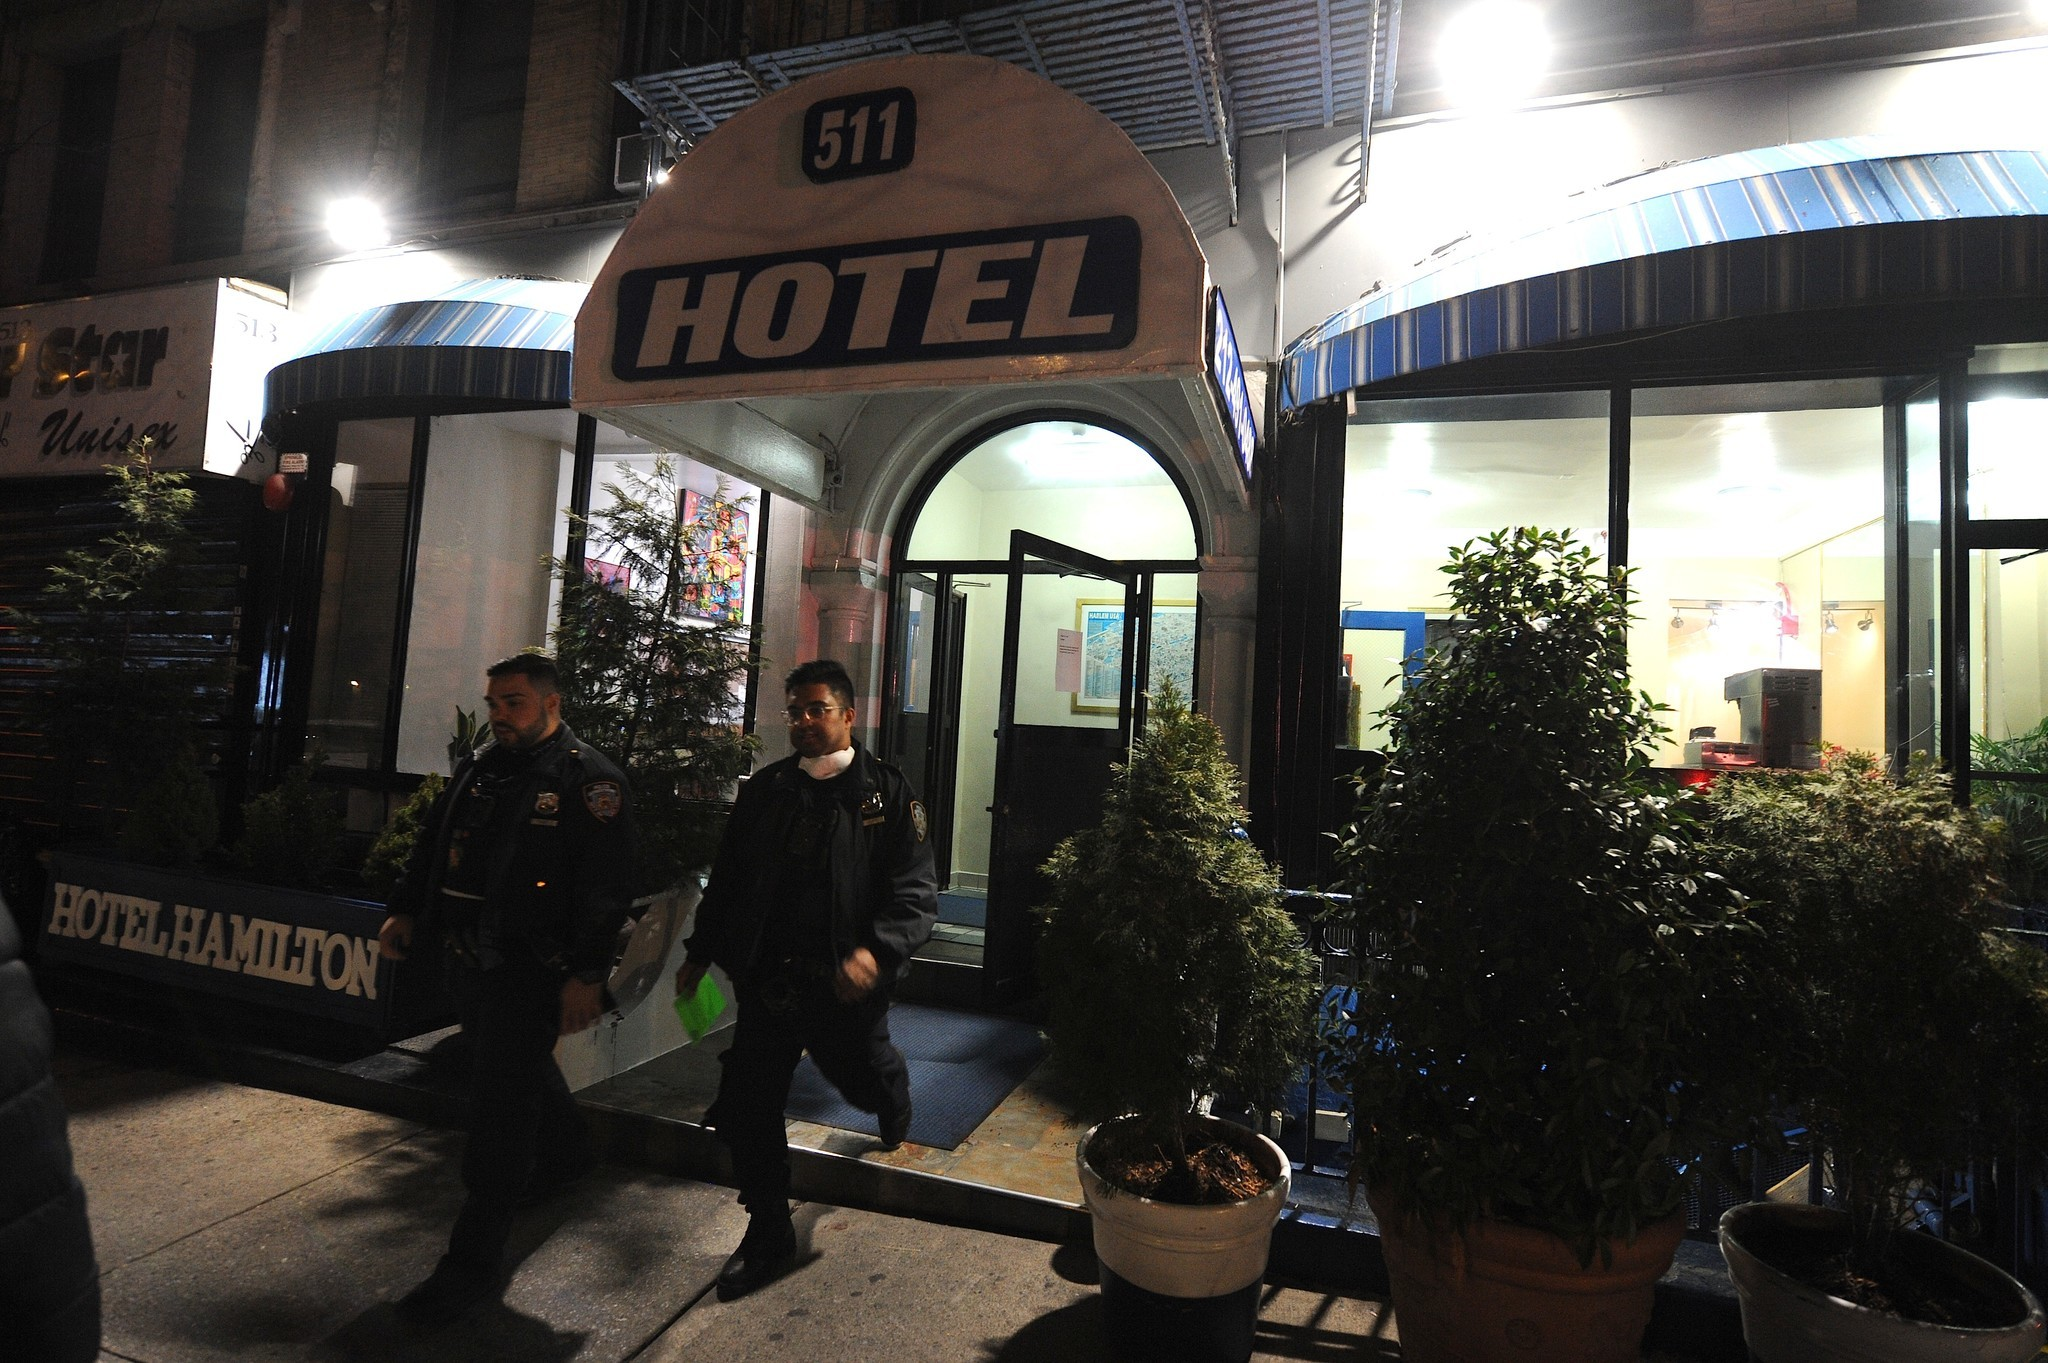 Man charged with murdering woman in Harlem hotel lobby